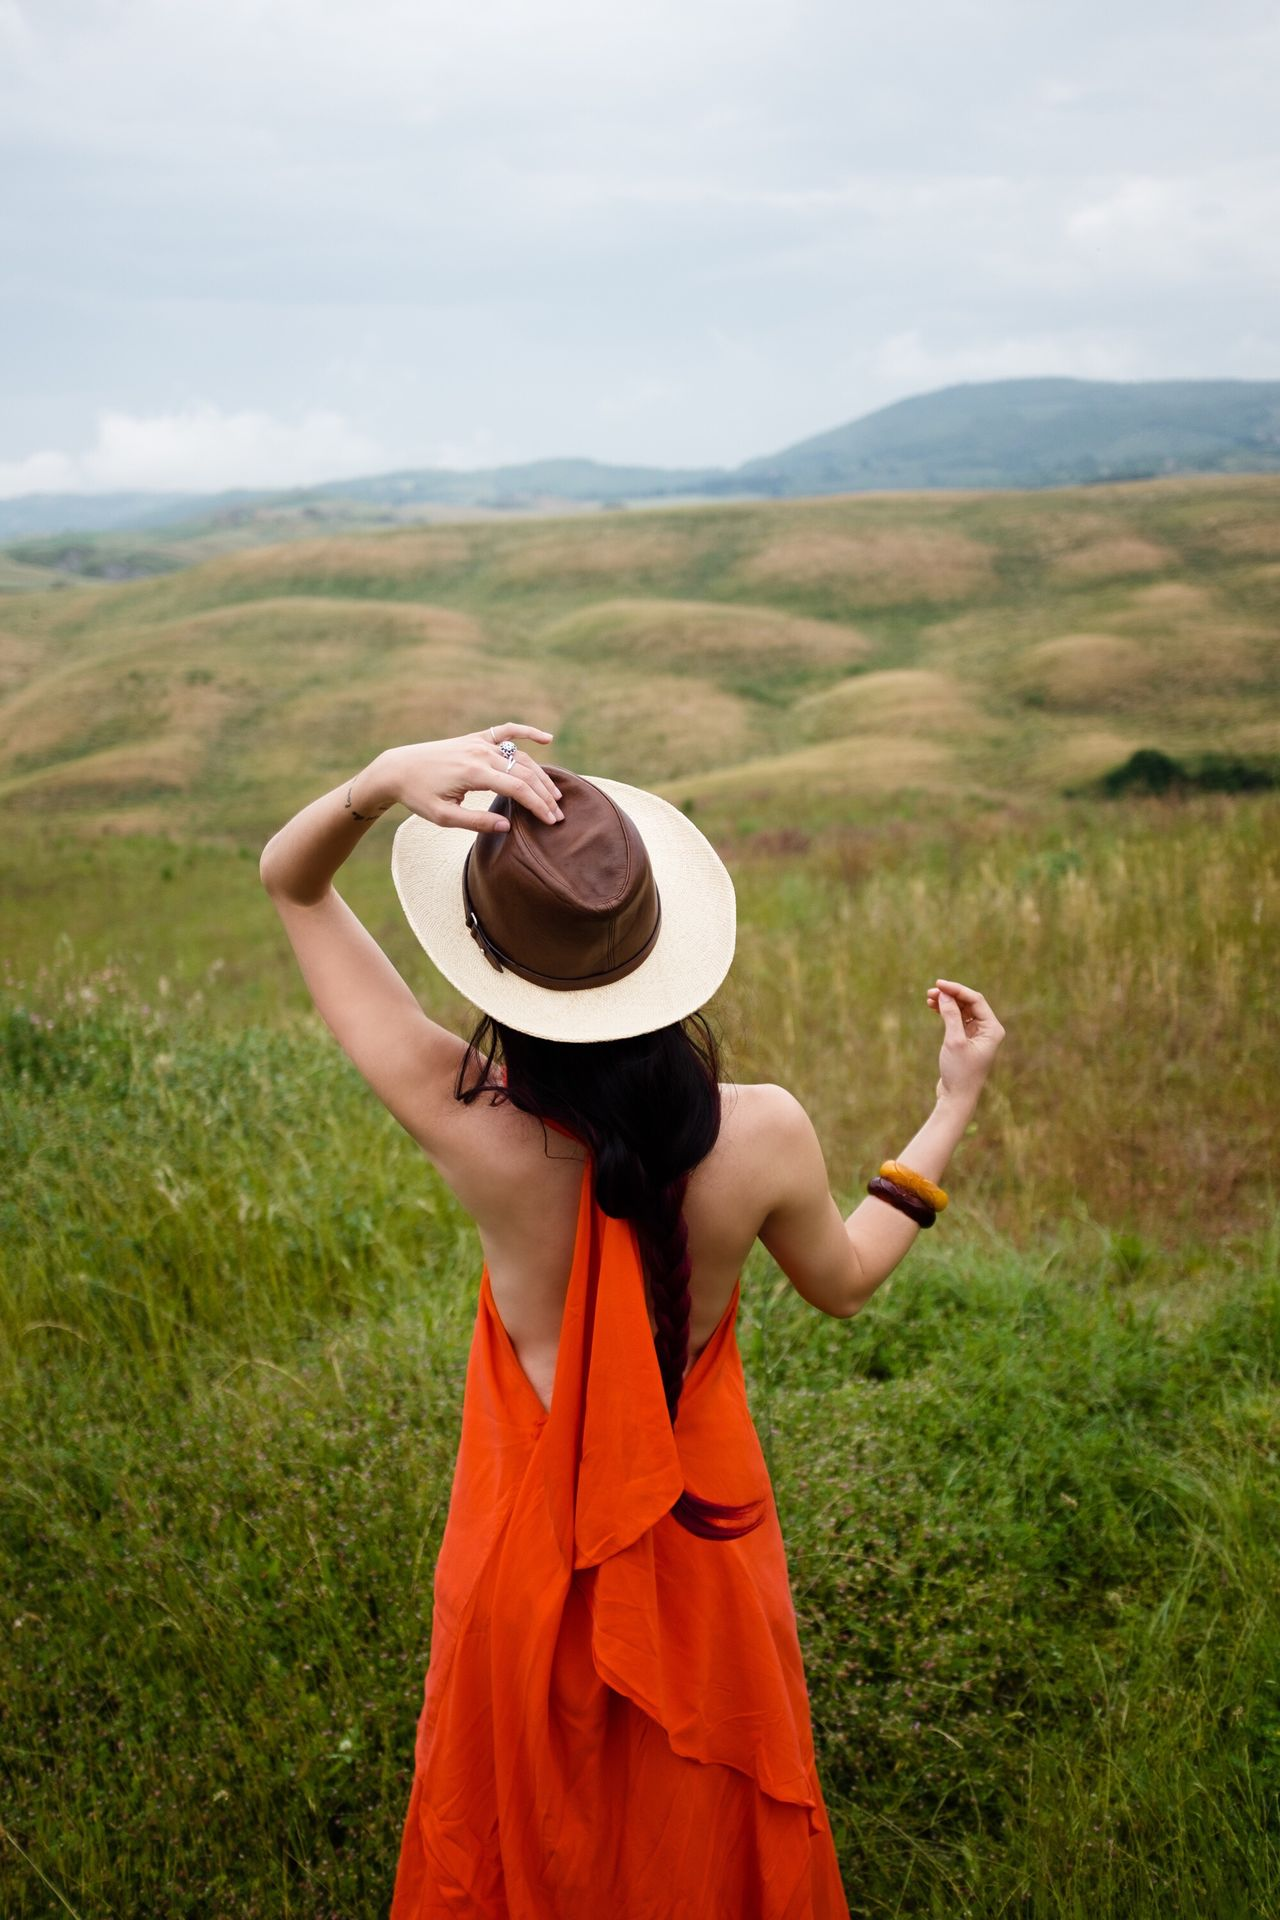 Holding Lifestyles Sky Focus On Foreground Young Adult Casual Clothing Cloud - Sky Mountain Beauty In Nature Nature Person Non-urban Scene Green Color Outdoors Scenics Red Orange Countryside Fujifilm_xseries EyeEmBestPics EyeEmbestshots Fashionable Landscape Tranquility Beauty